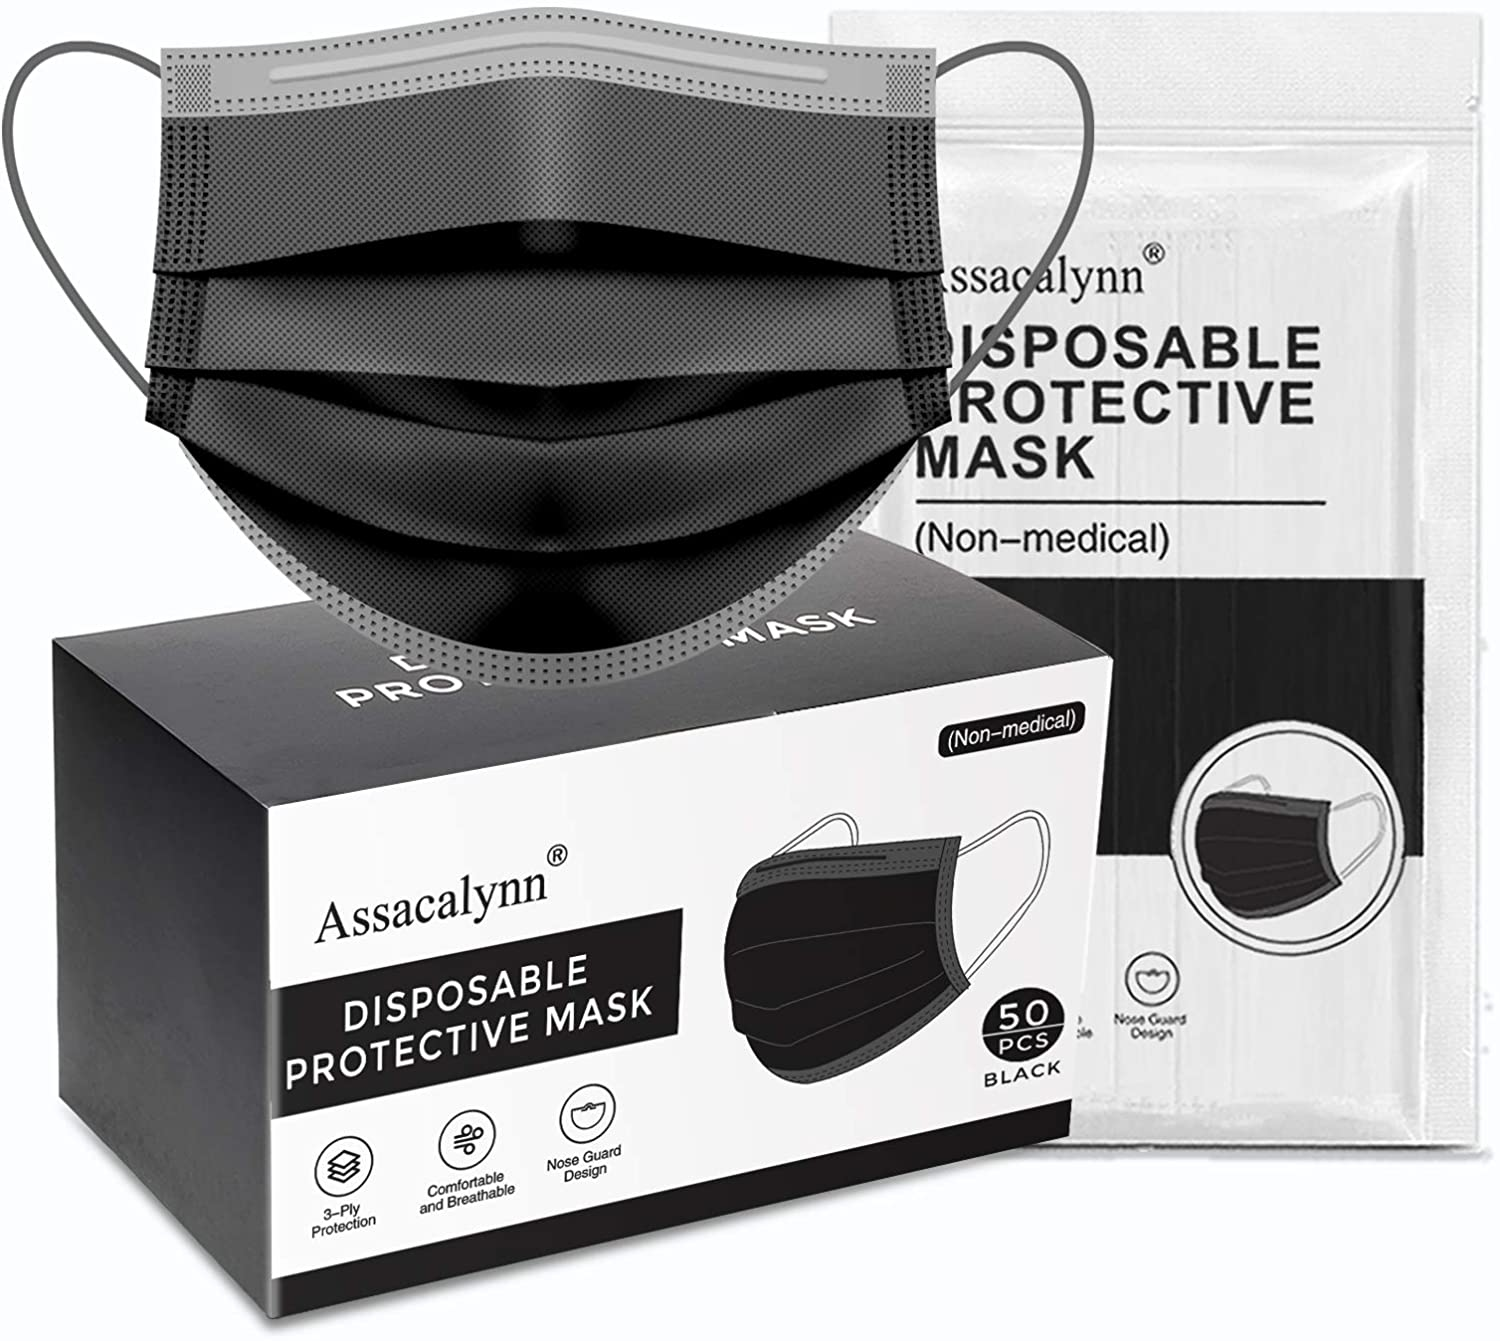 50 pcs Assacalynn 3 Layer Disposable Safety Face Mask (Black) - $5.28 + FS order on $25 at SpecialDaytime via Amazon